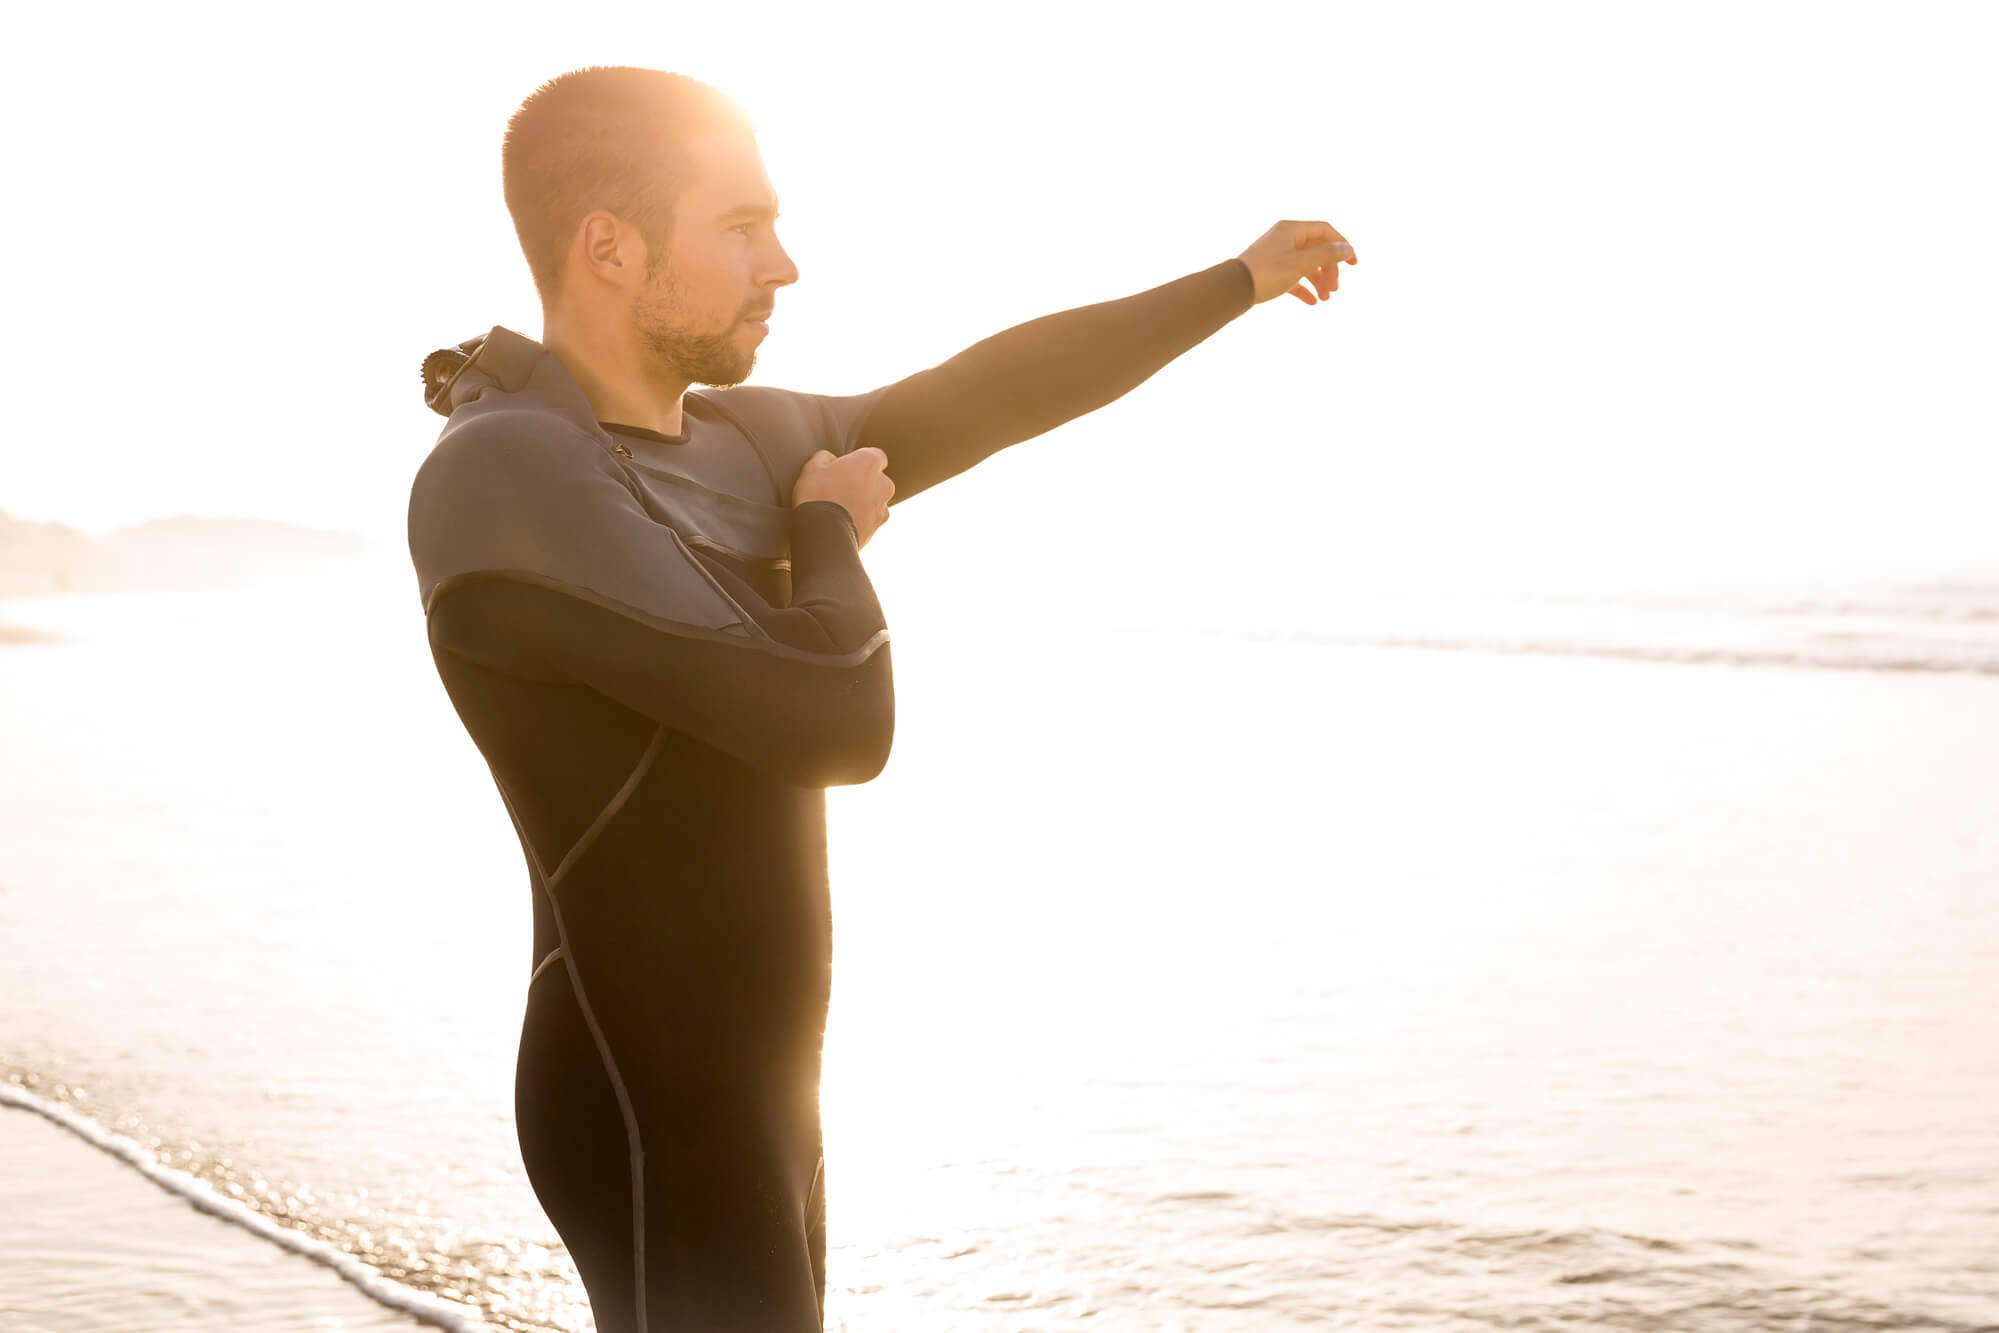 Man In Wetsuit On Beach